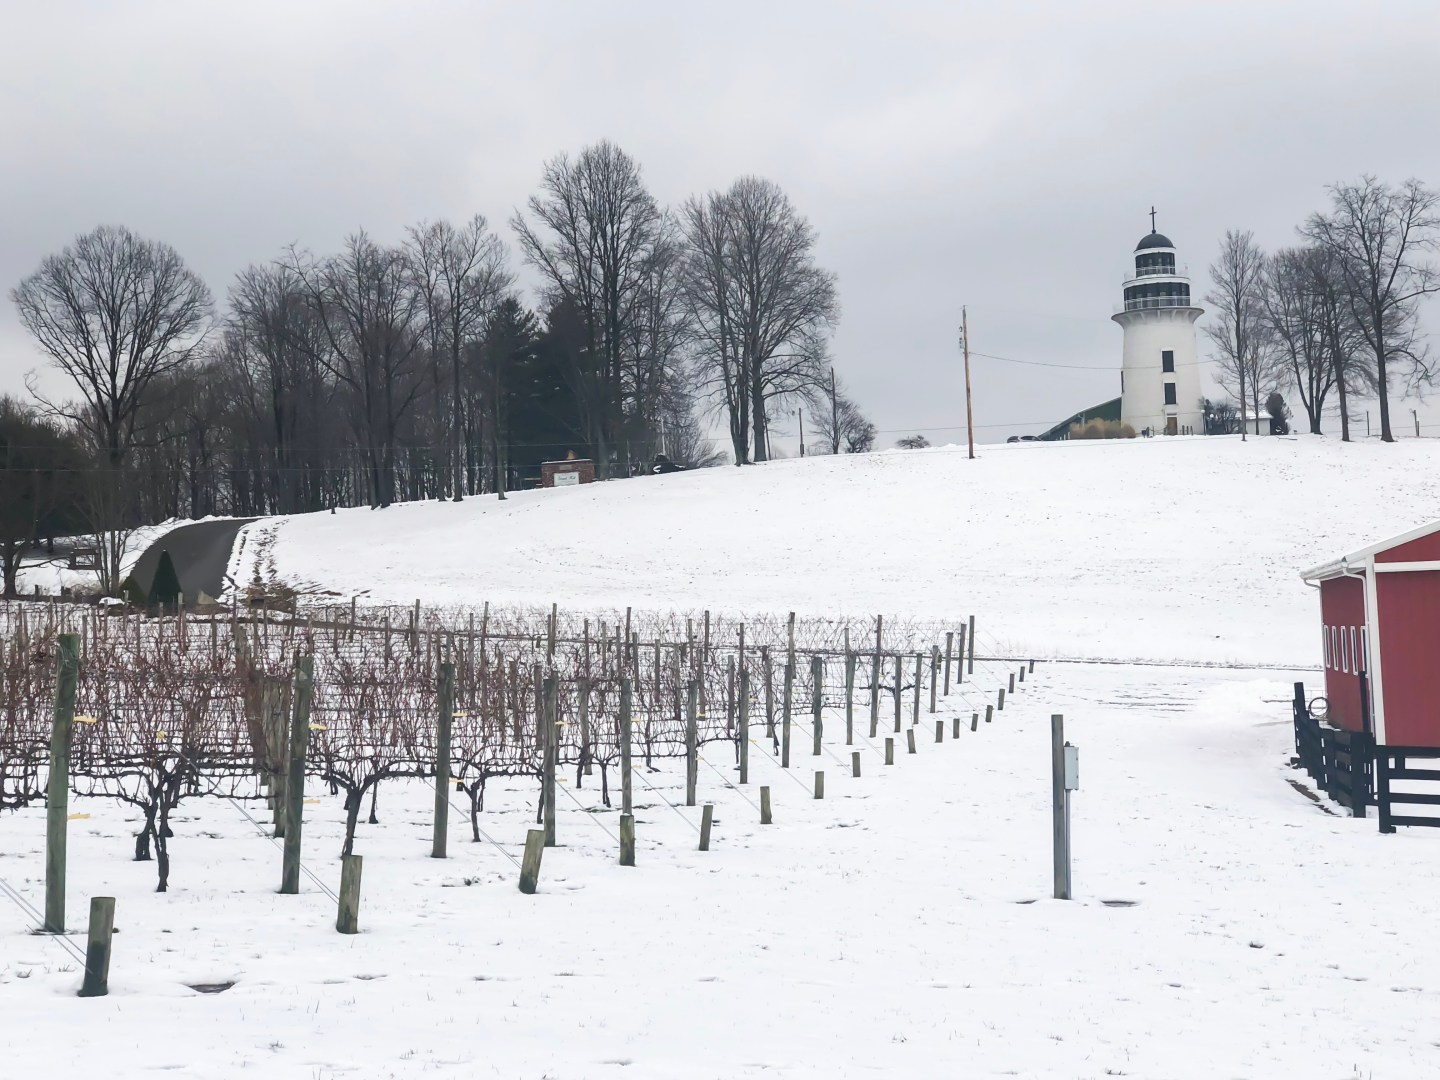 I'm sure when you think of wine and wine country, Napa Valley, California comes to mind. However, Ohio is the sixth largest producer of wine in the country. Upon further research, I've discovered that Coshocton, Ohio was the number one wine destination in 2018. I visited and got to see the beauty the area has to offer, along with learning about wine from the wineries. Looking for somewhere to eat or attractions in the area? Check out the travel guide to Coshocton! Heritage Hill is an award-winning winery! #sponsored #coshco #coshocton #ohio #visitohio #travel #winery #wine #winetasting #amishcountry #cochoctonohio #ogic #grapes